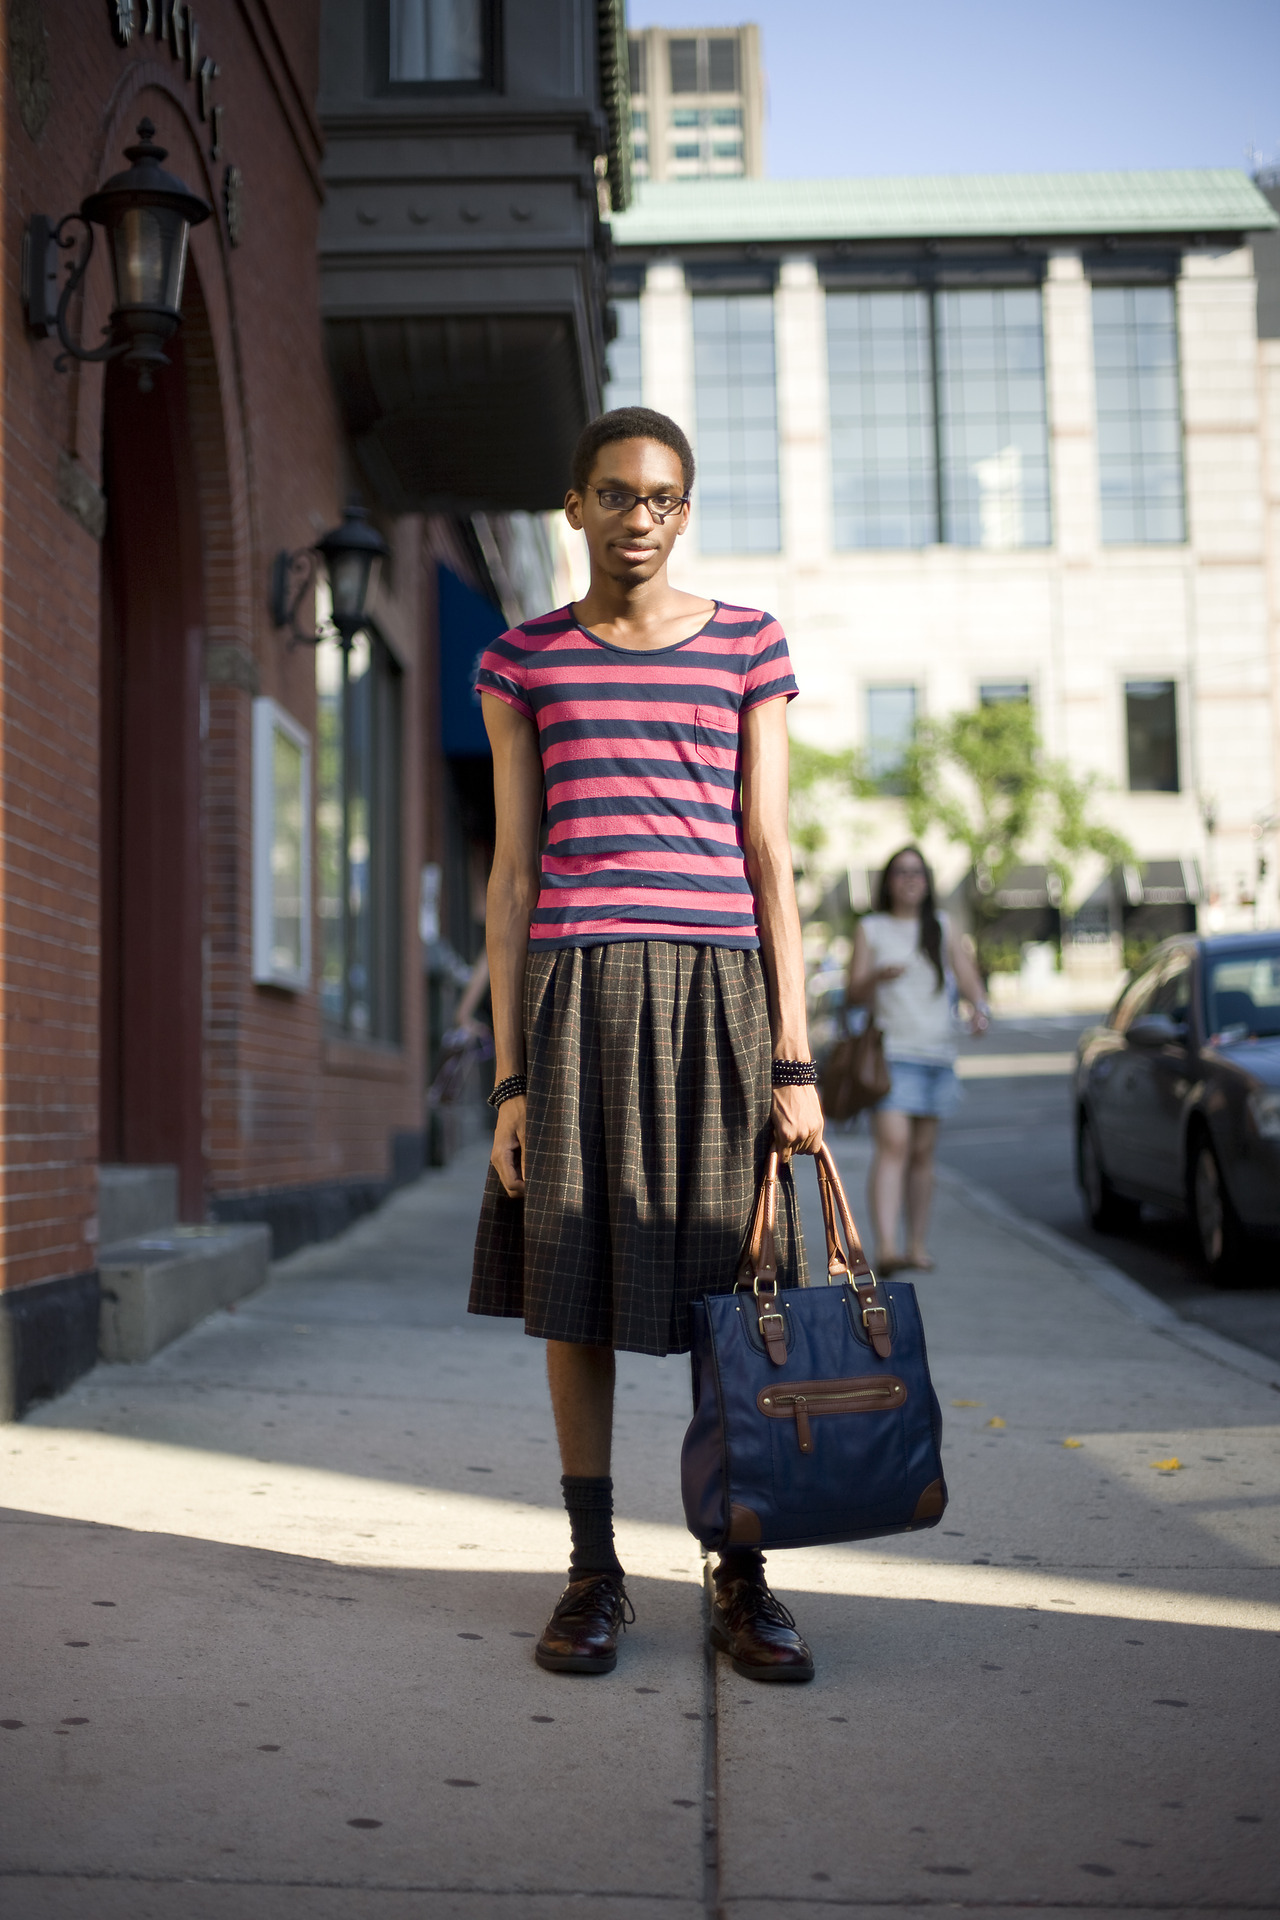 Self Described Style: EclecticOccupation: Journalism StudentFavorite Store in Boston: ZaraSpotted at: Newbury St. & Hereford St. I was first drawn in by the bag. Then when I took in the rest of the outfit I was so happy to see someone with such a unique look. From the loafers, to the skirt, to the bag he has chosen some interesting pieces and he isn't afraid to mix them together.